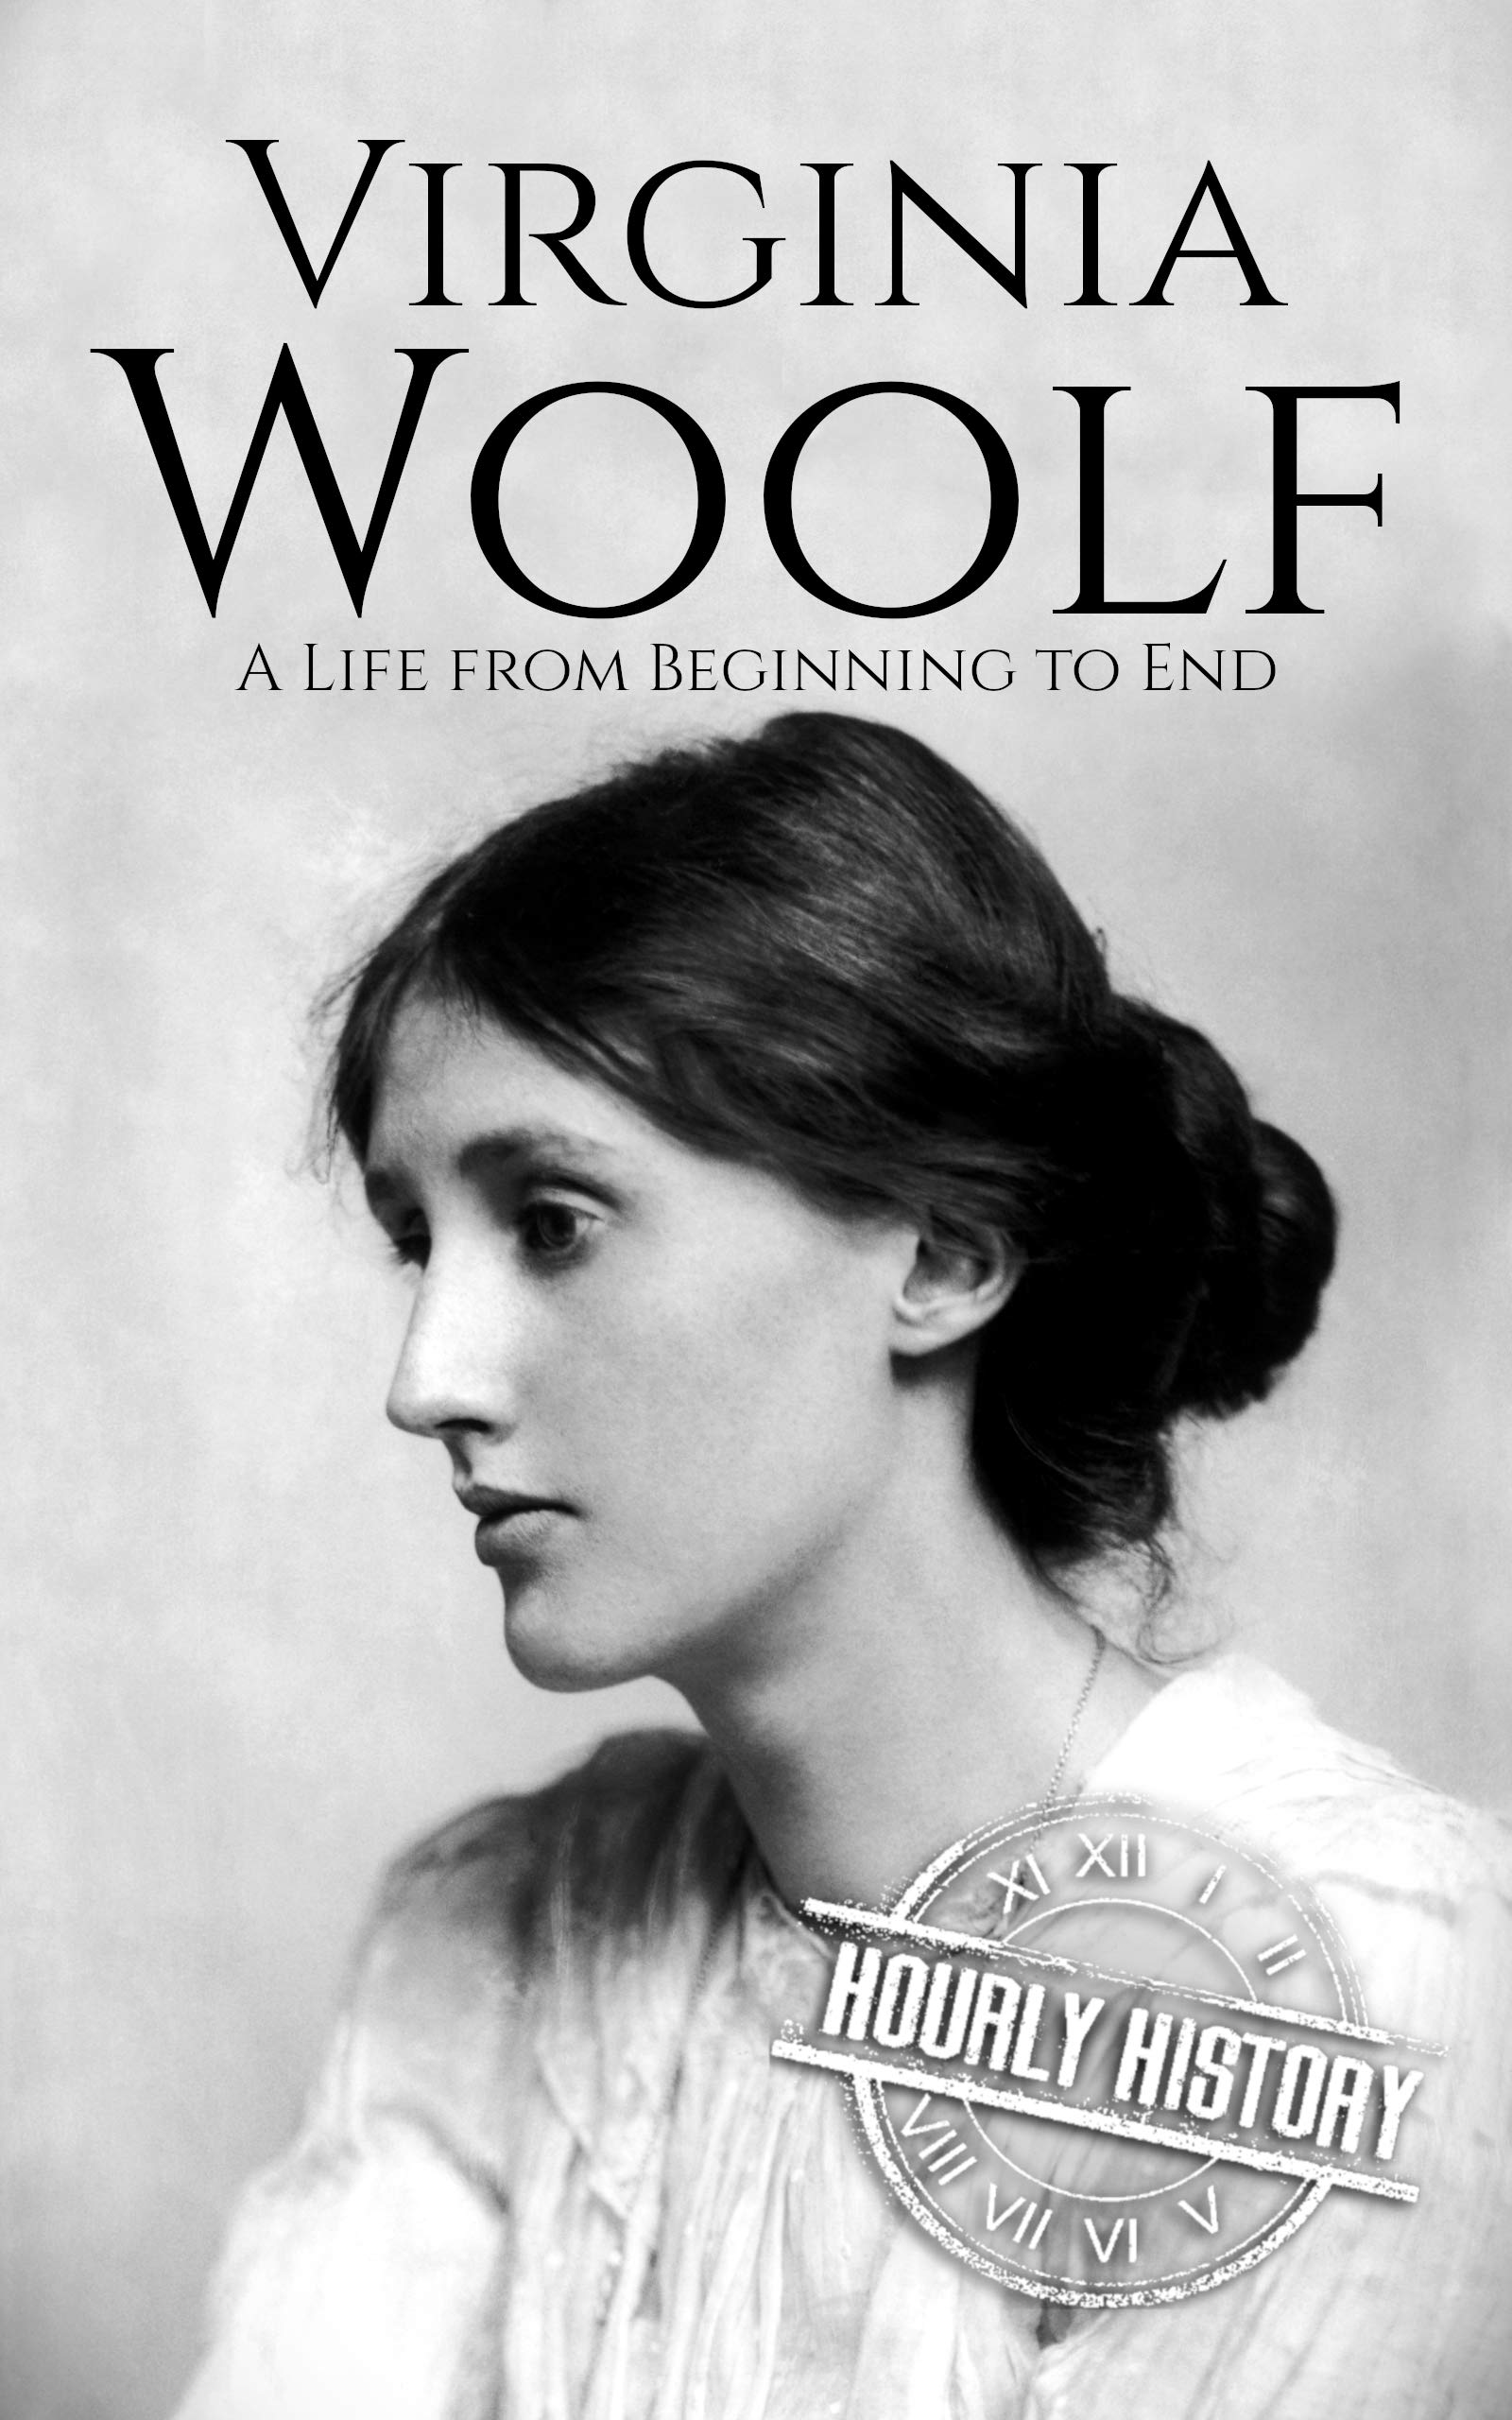 Virginia Woolf: A Life from Beginning to End